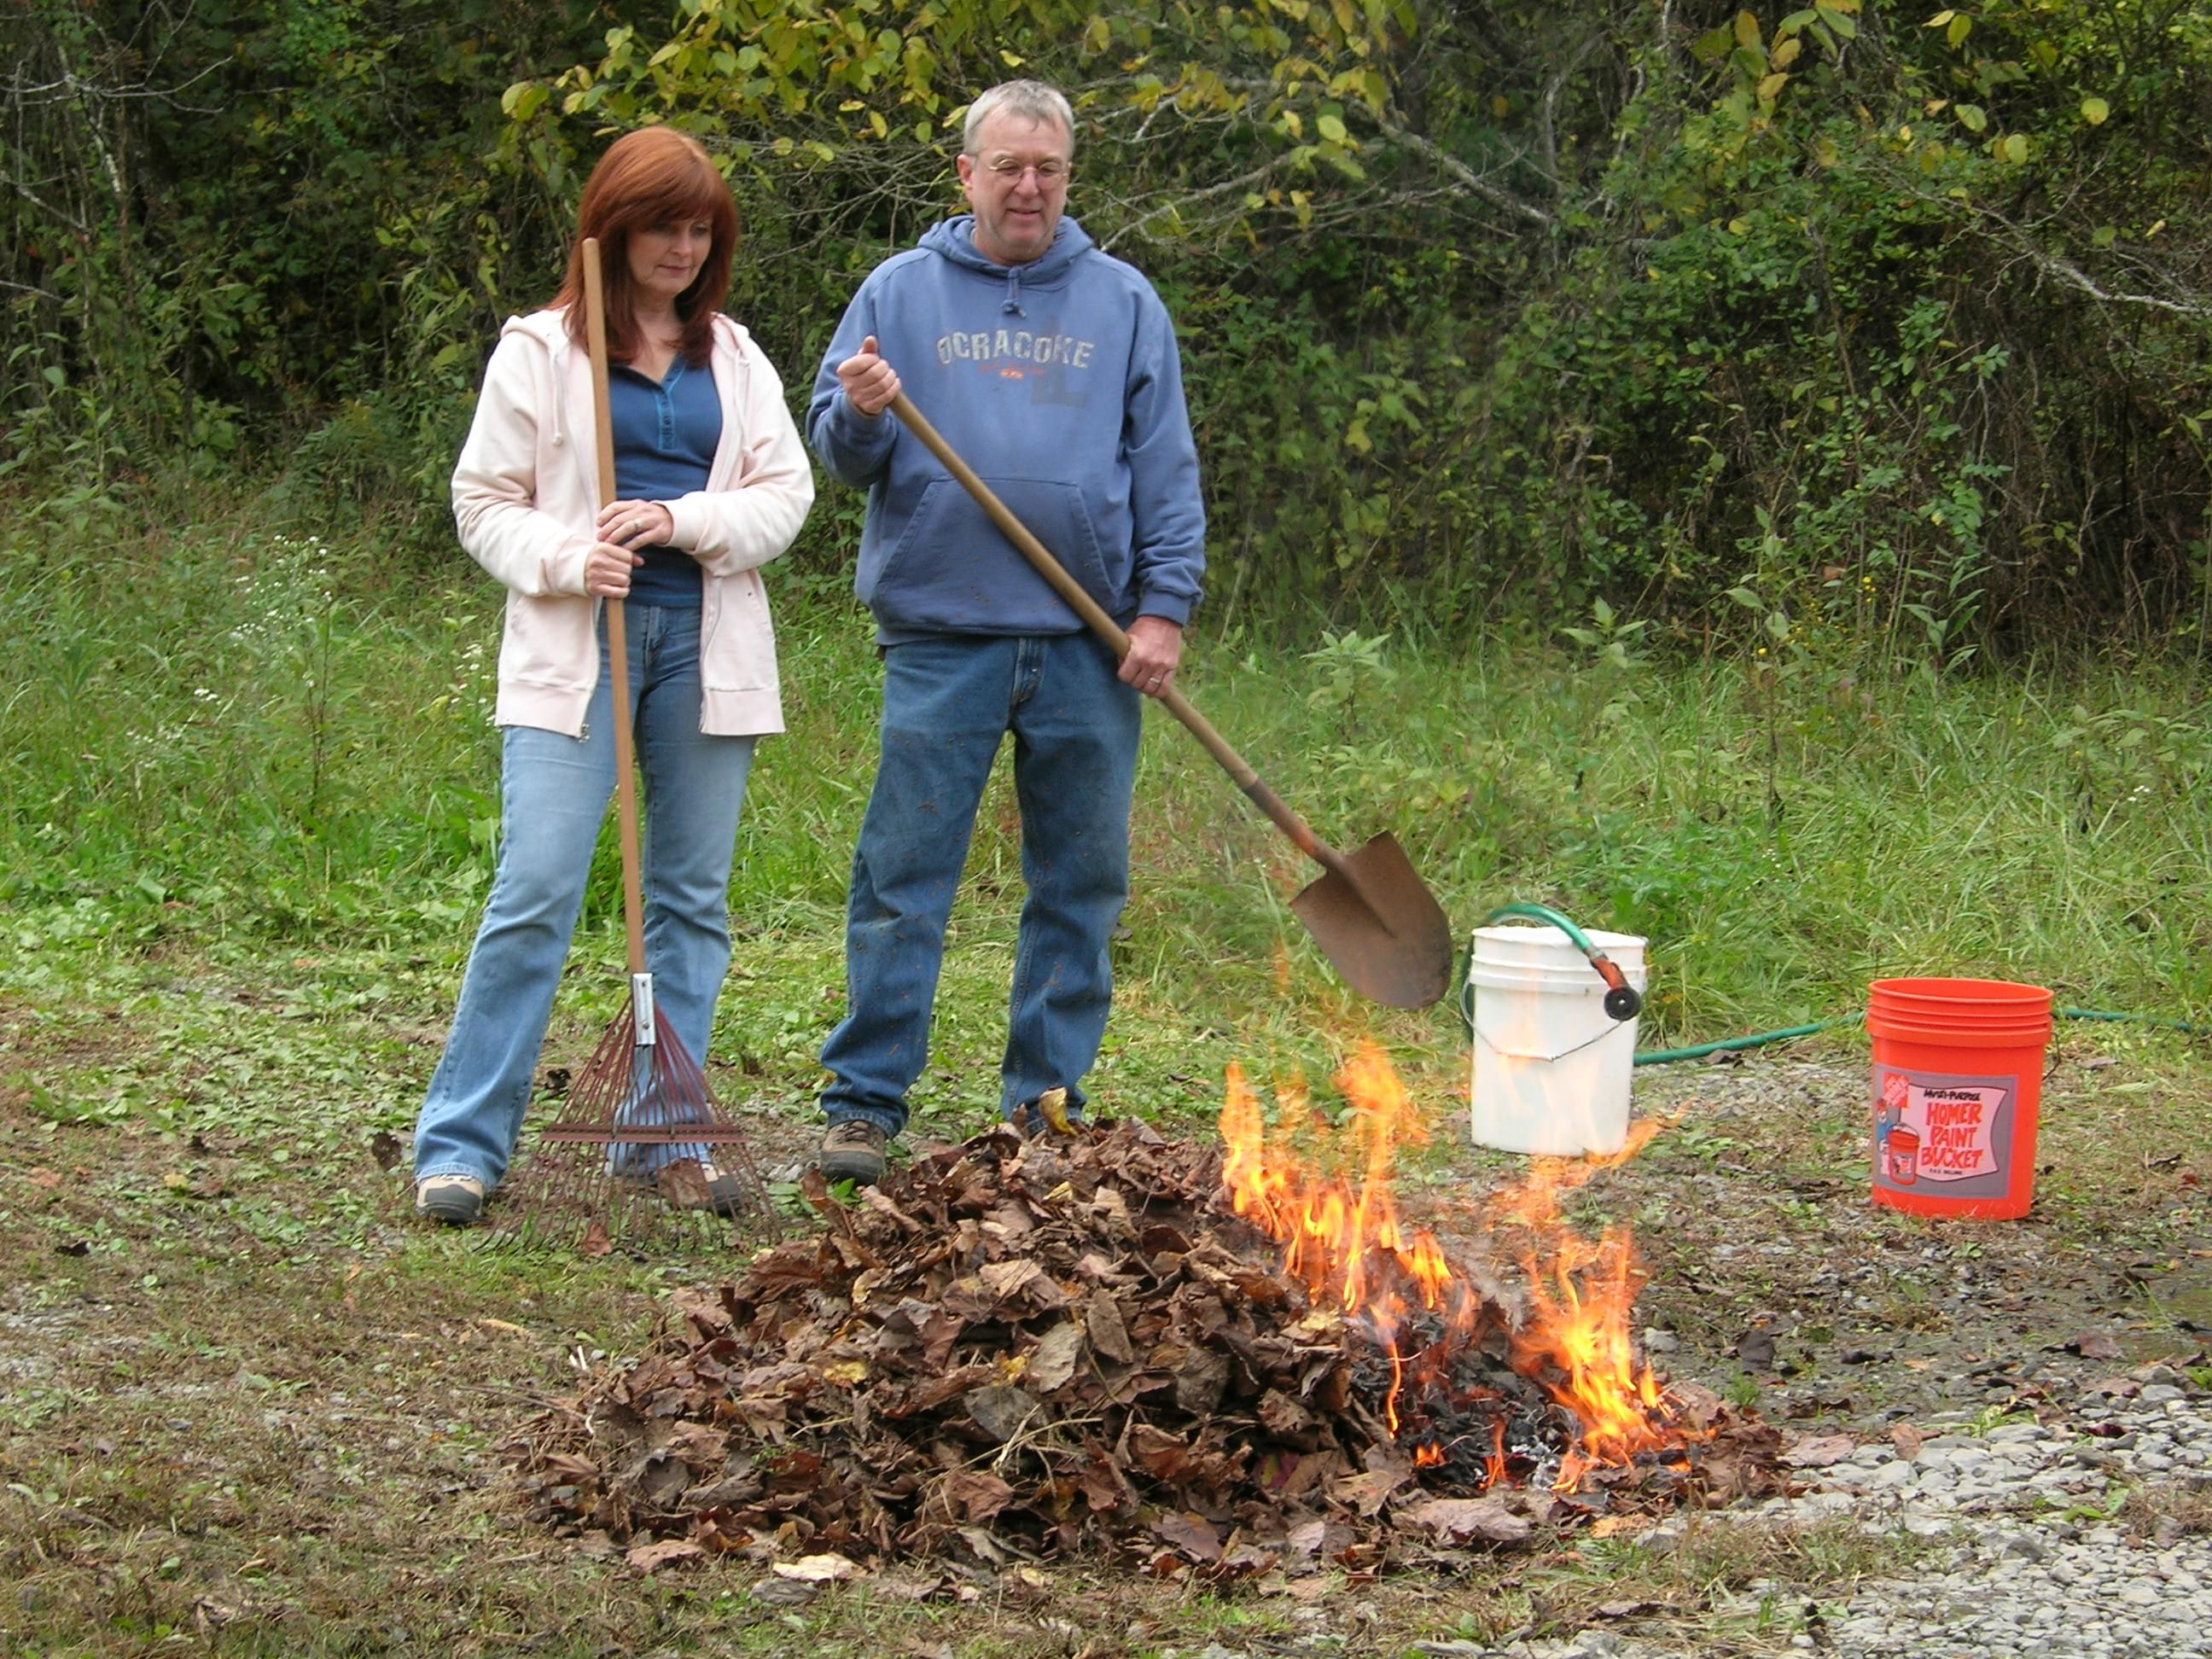 Wildfire Season is Underway and Tennesseans are Required to Have a Burn Permit for any Debris